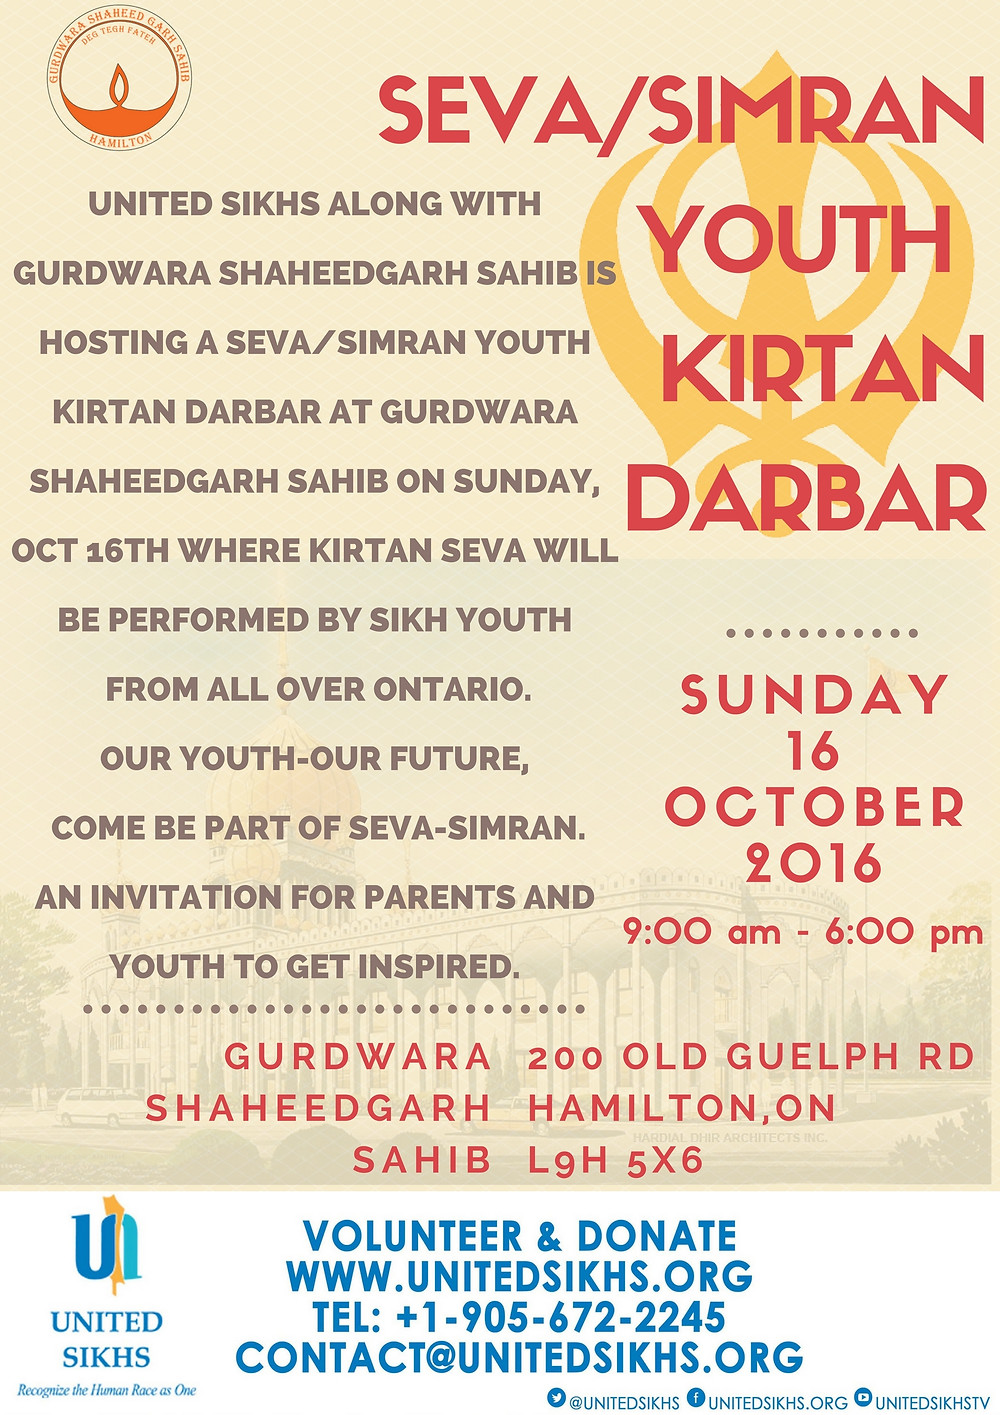 Youth Kirtan Darbar in HAmilton on Oct 16, 2016